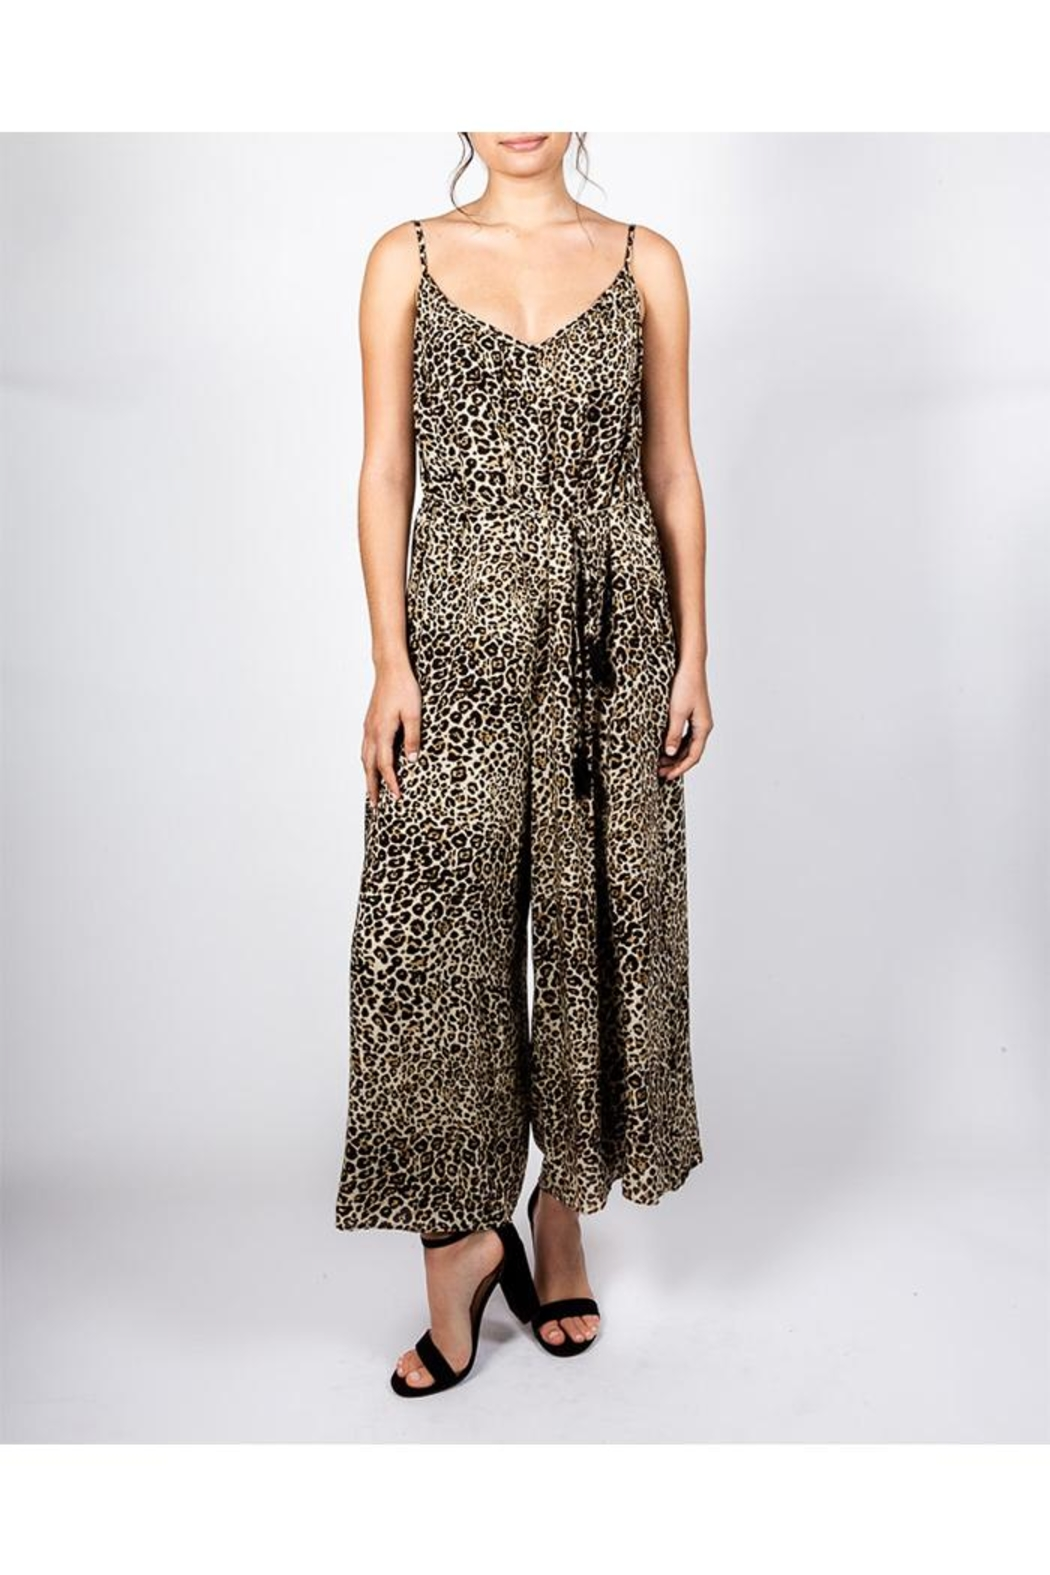 AAKAA Cheetah Chic Jumpsuit - Front Cropped Image